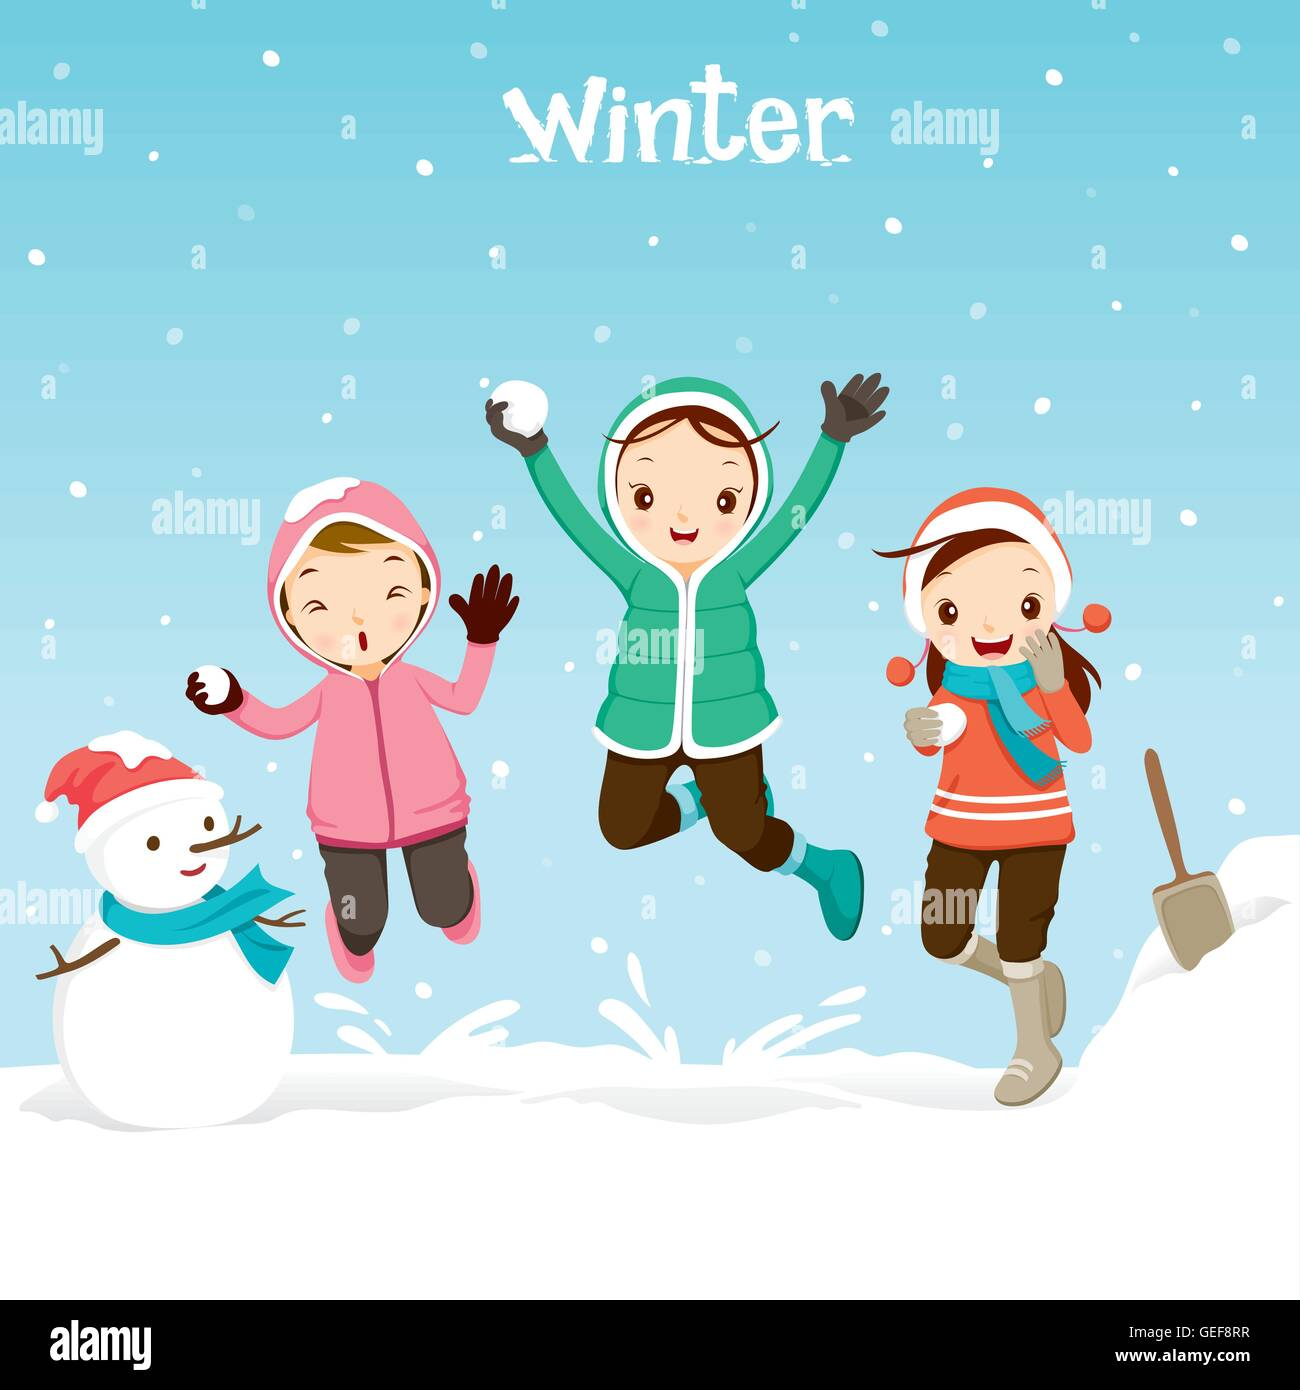 Children Playing Snow Together Activity Travel Winter